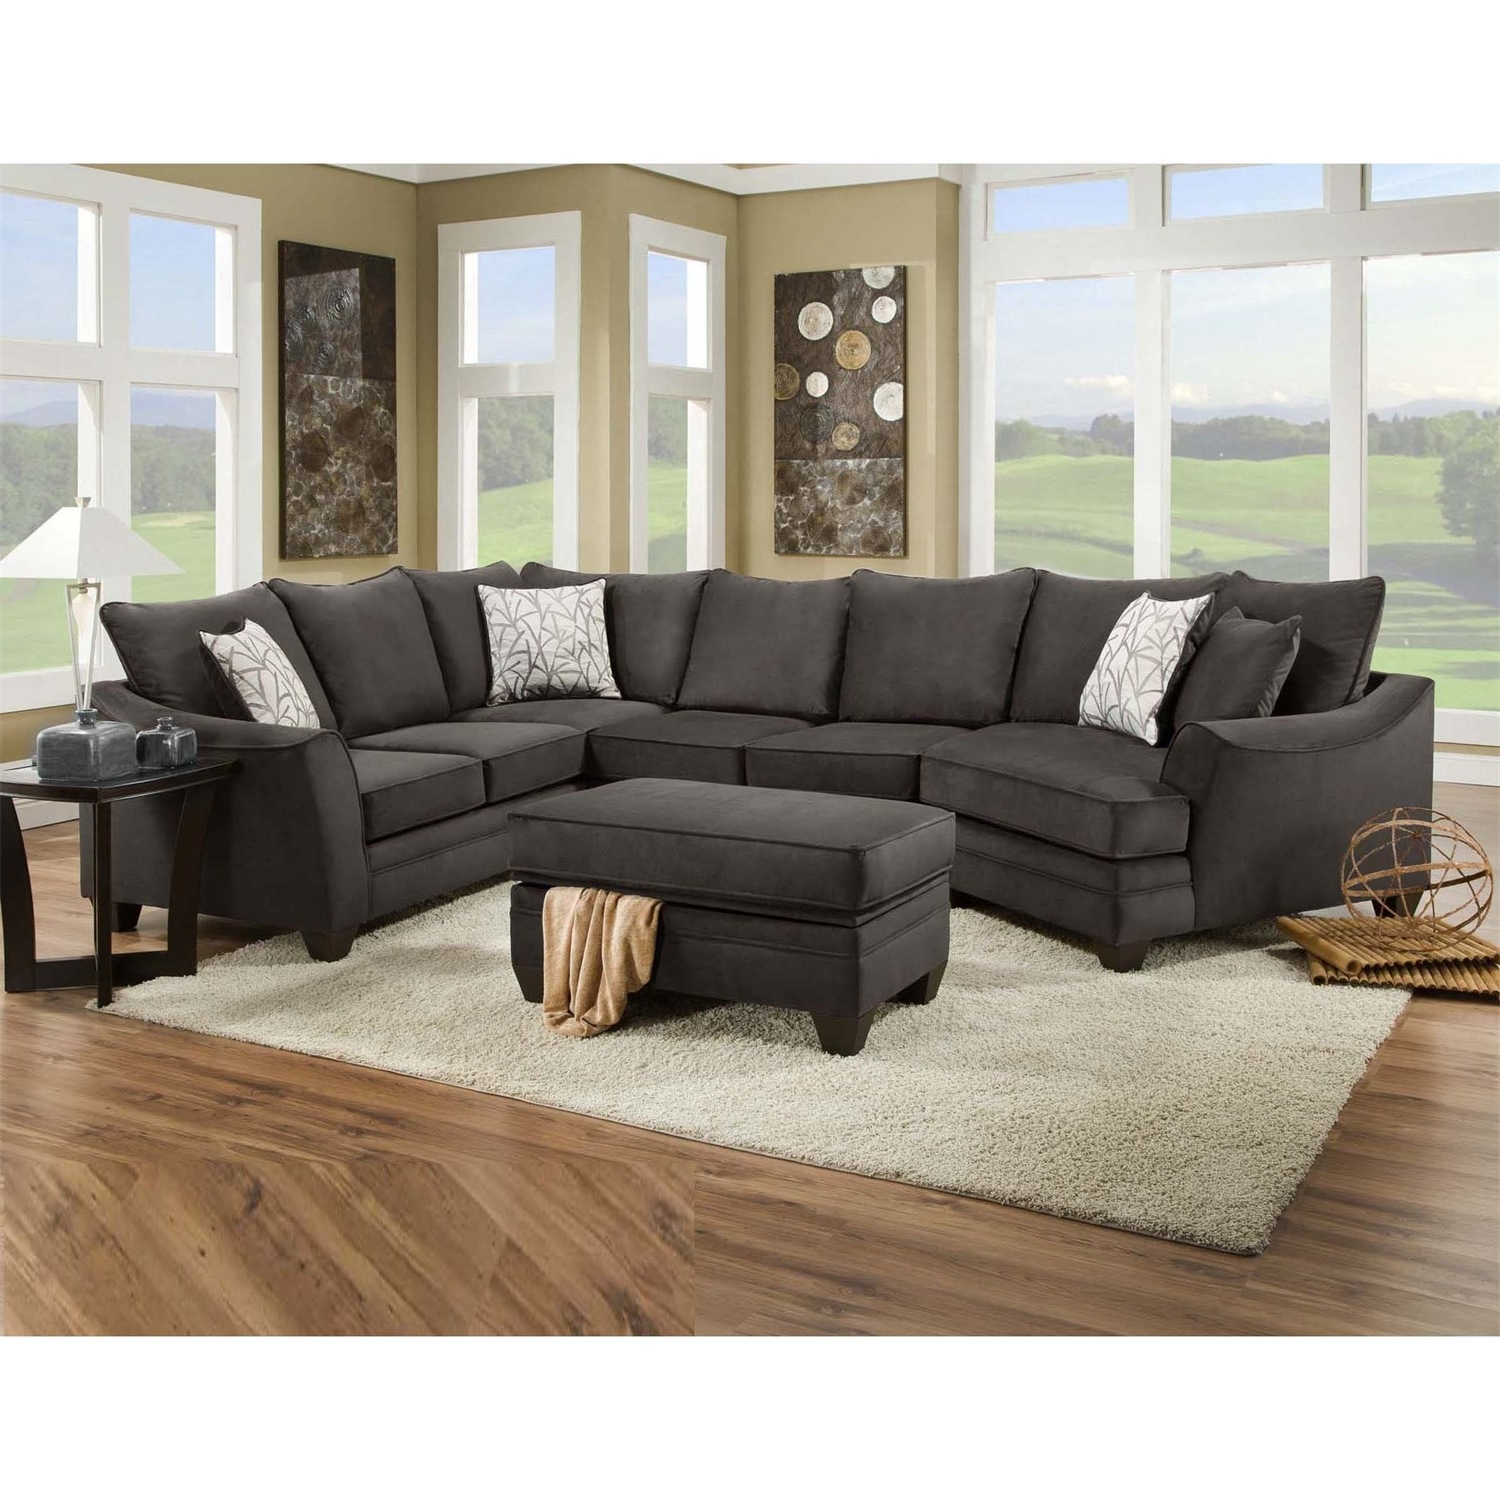 Homeclick With Home Furniture Sectional Sofas (View 10 of 15)